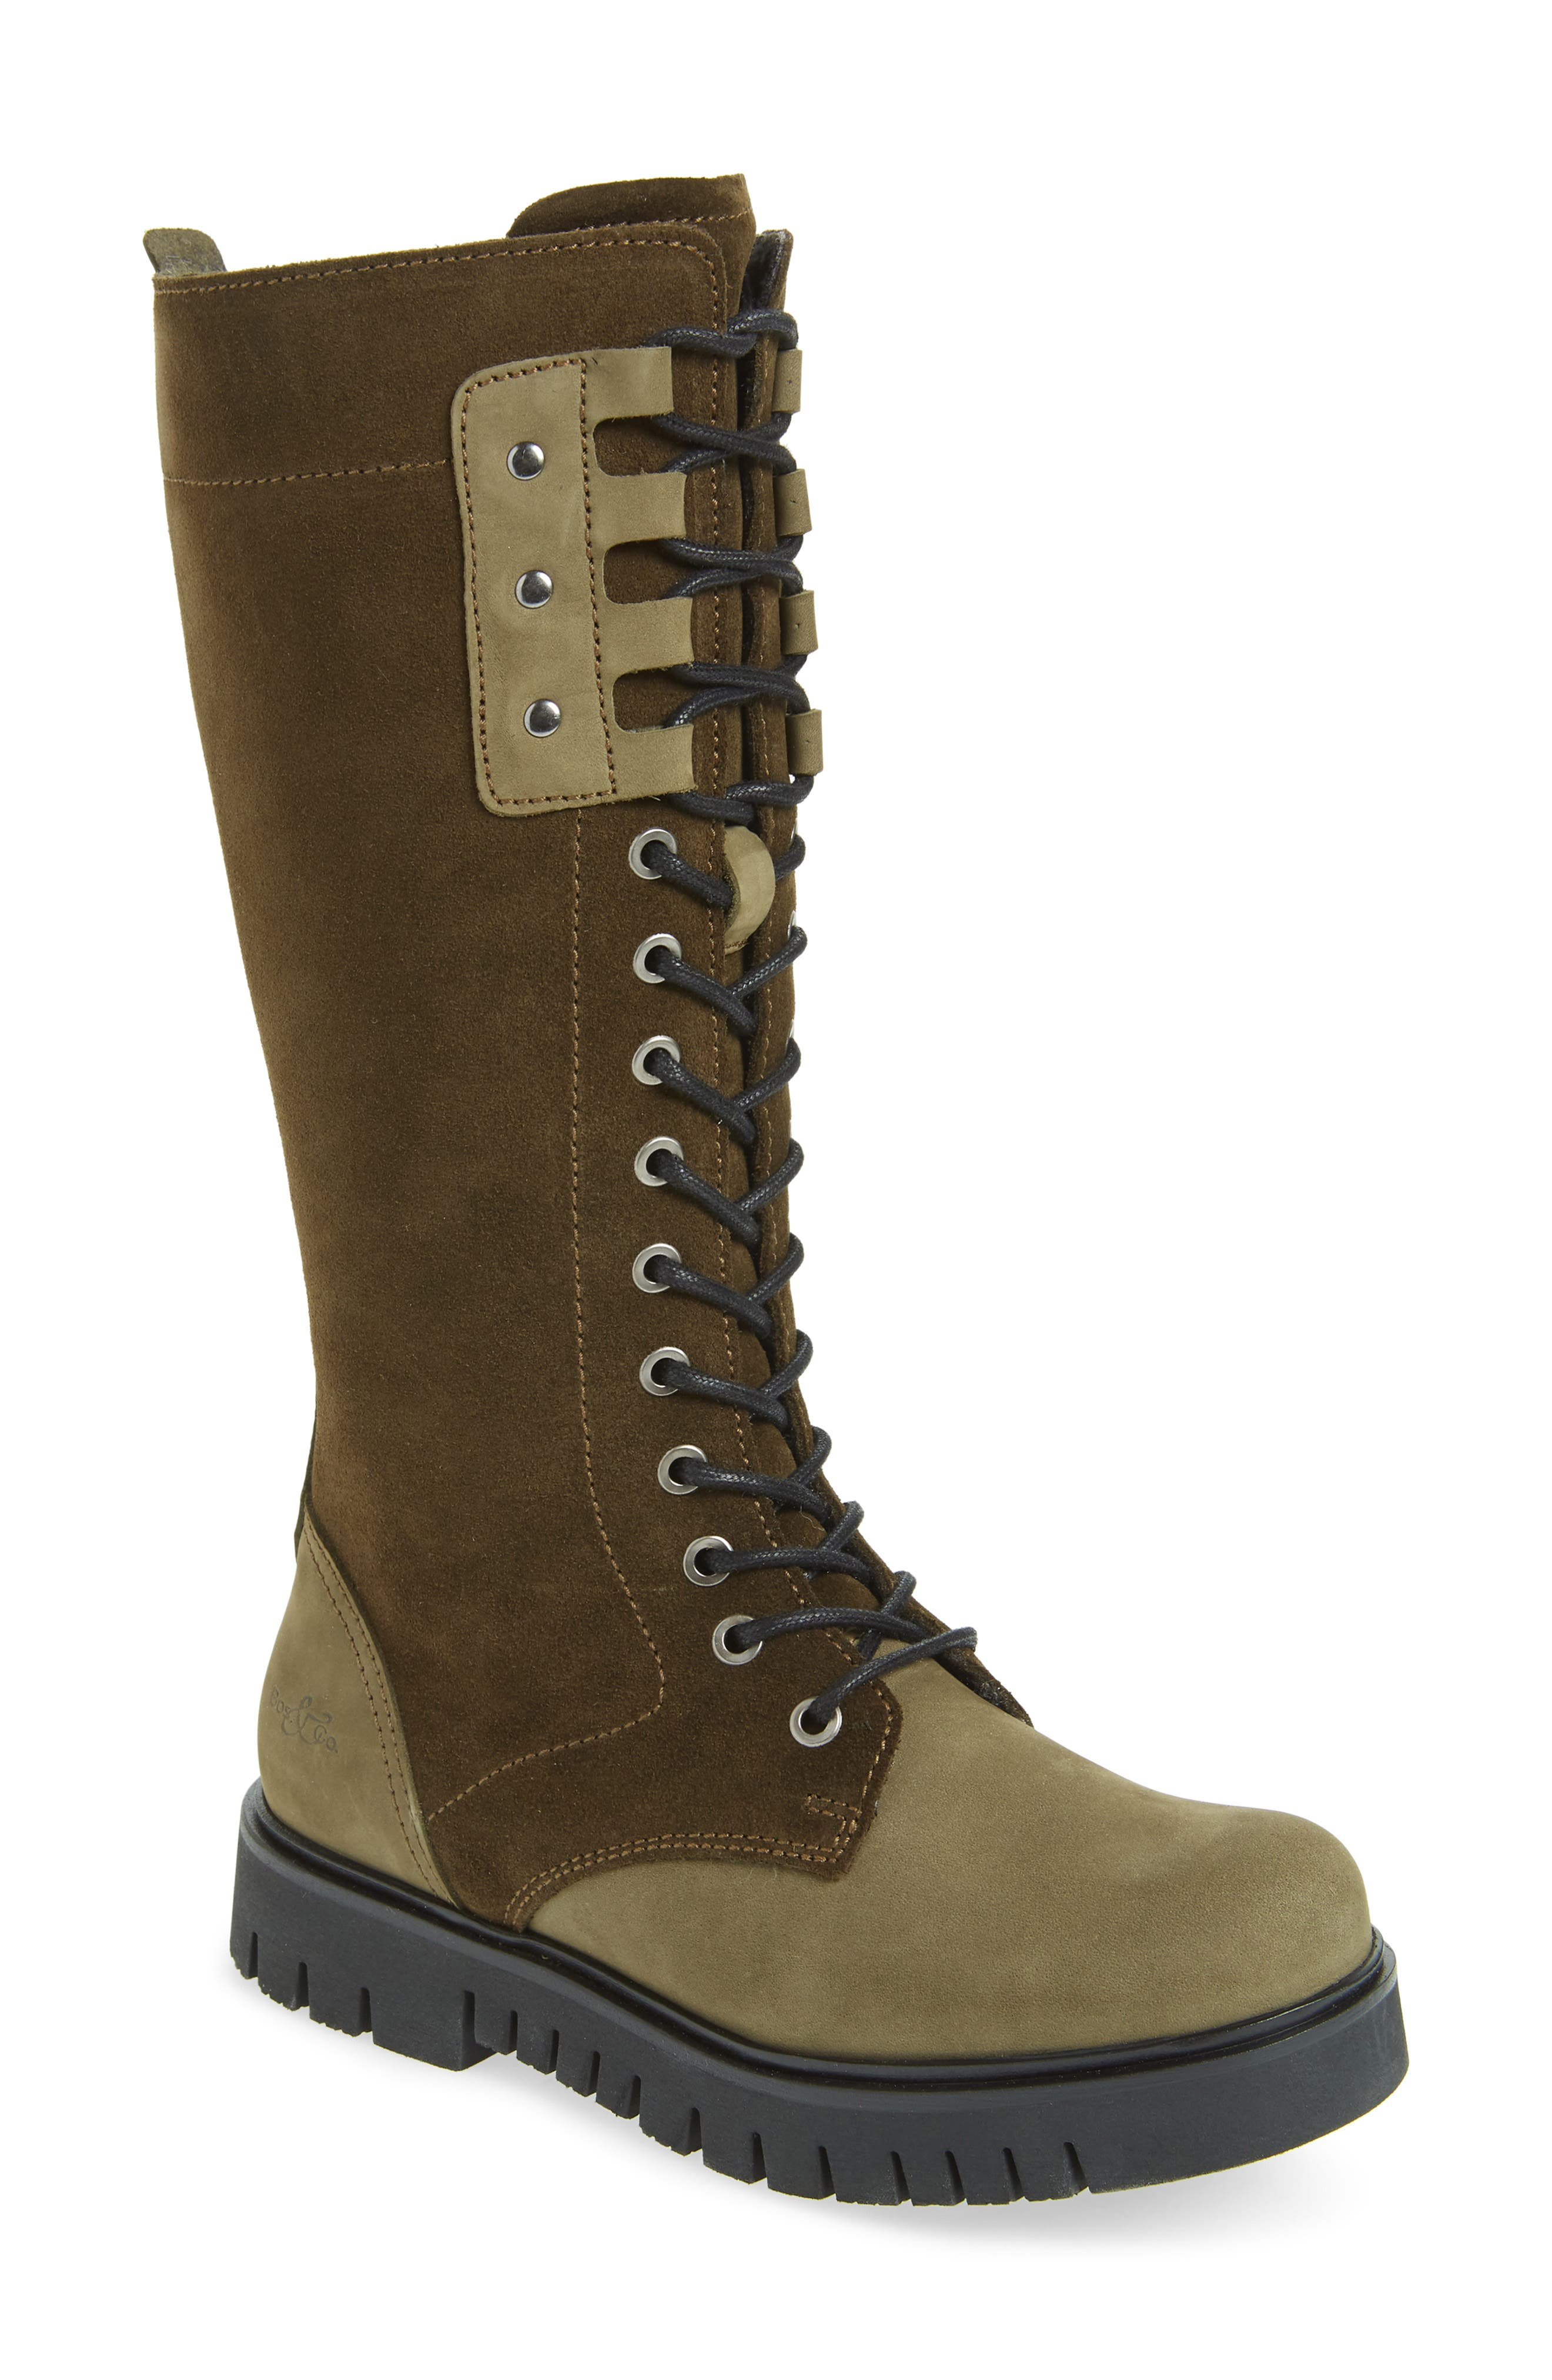 Bos. & Co. Portage Waterproof Lace-Up Boot - Green